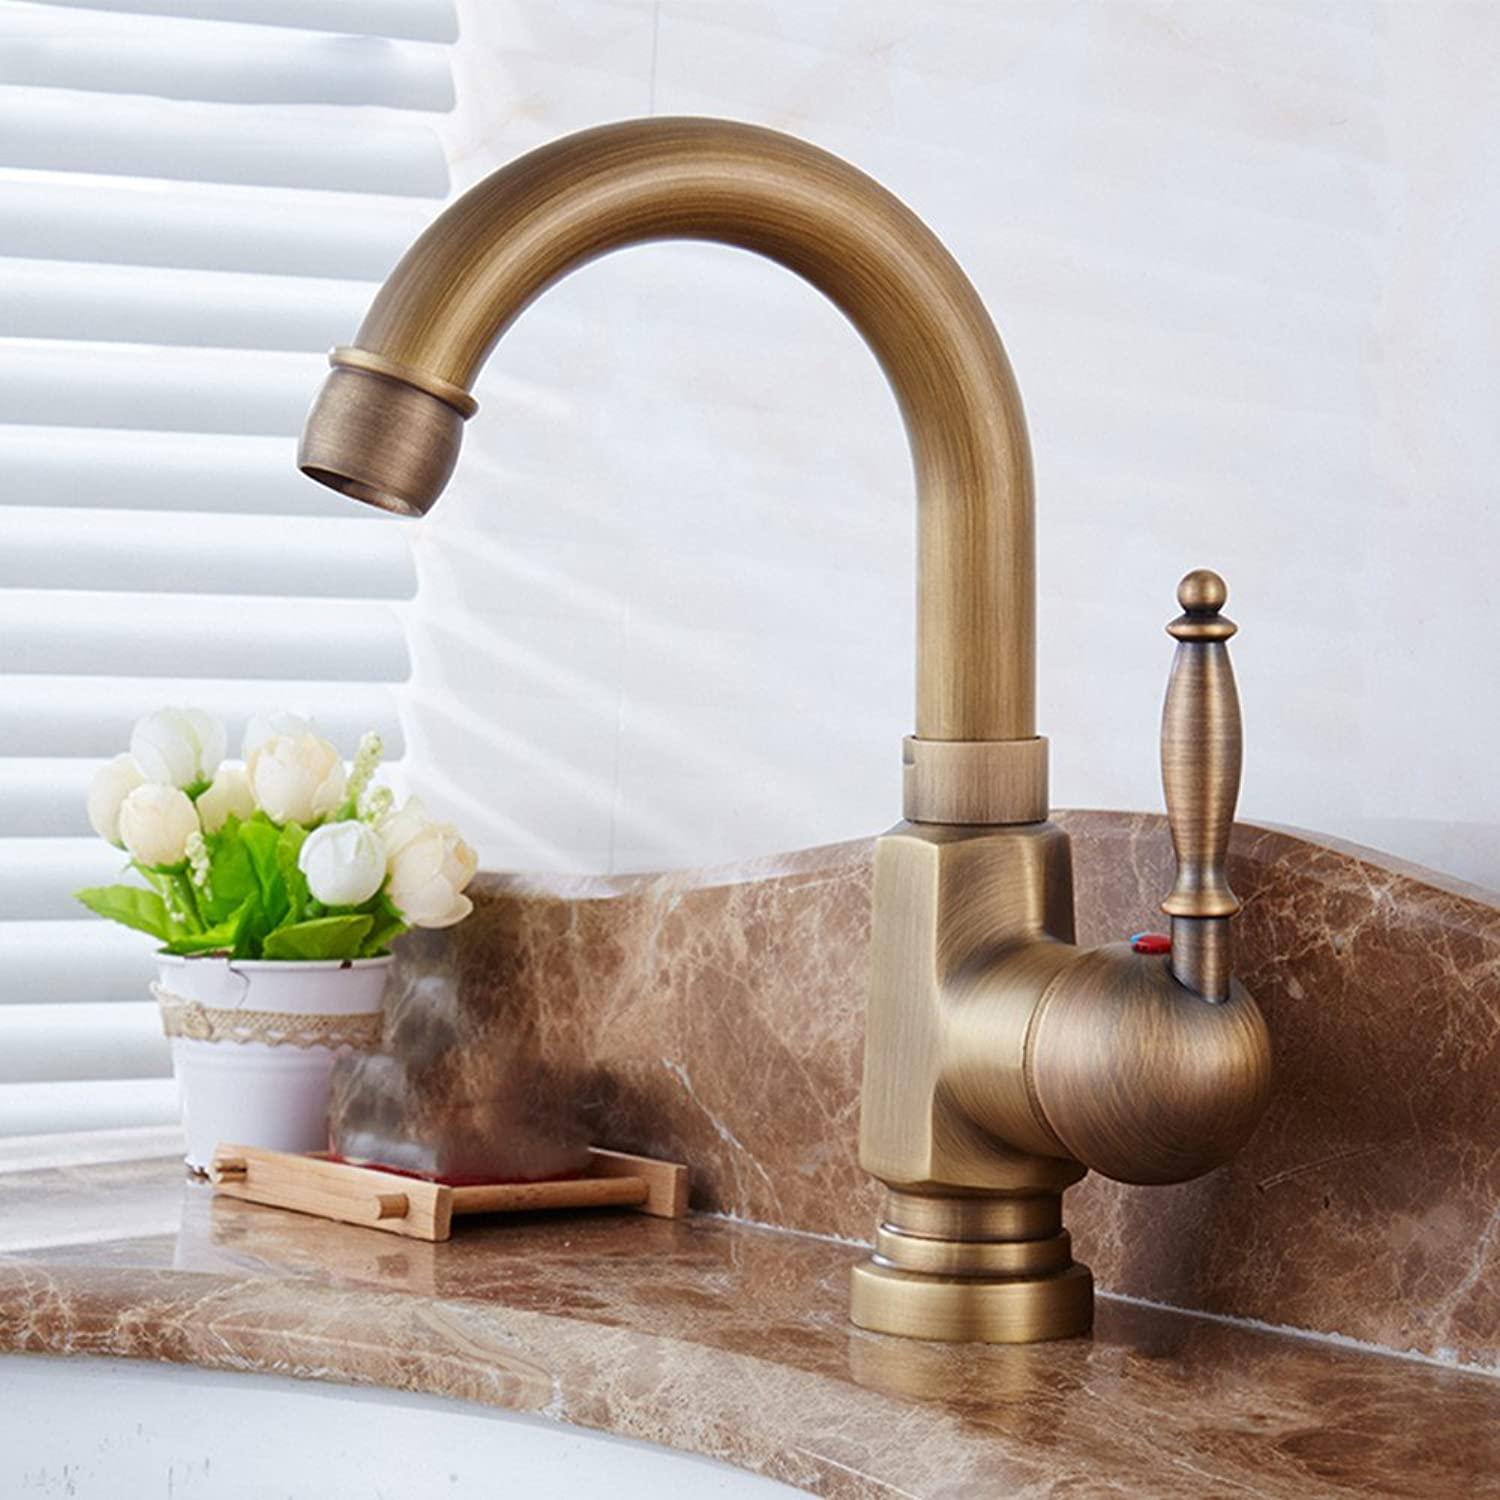 Hlluya Professional Sink Mixer Tap Kitchen Faucet Antique full copper cold water surface basin basin Washbasin Faucet, B